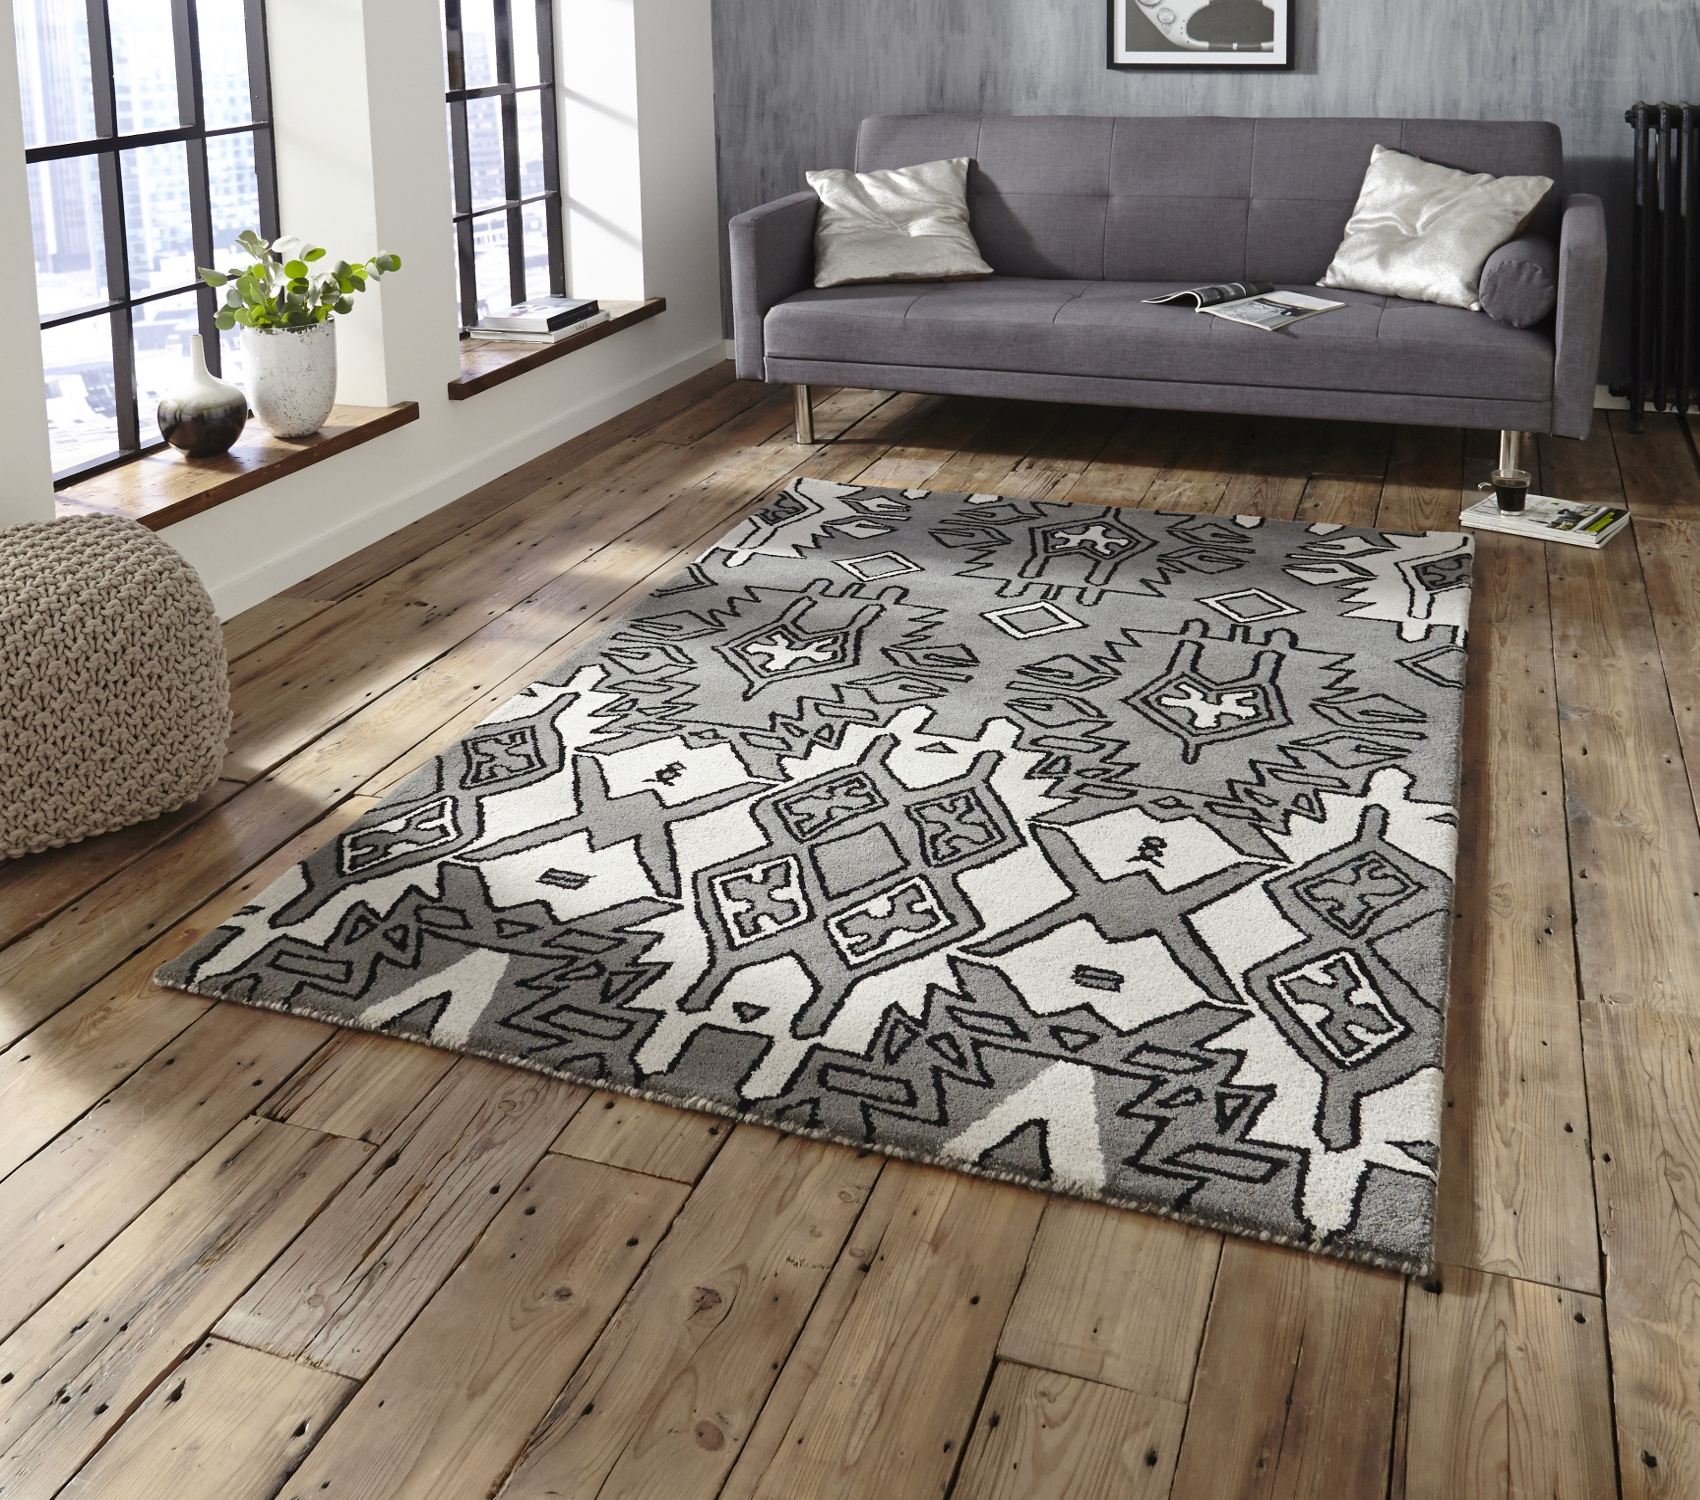 Spectrum Hand Tufted Modern Aztec Style Rug 100 Wool Large Centre Regarding Large Wool Rugs (Image 14 of 15)